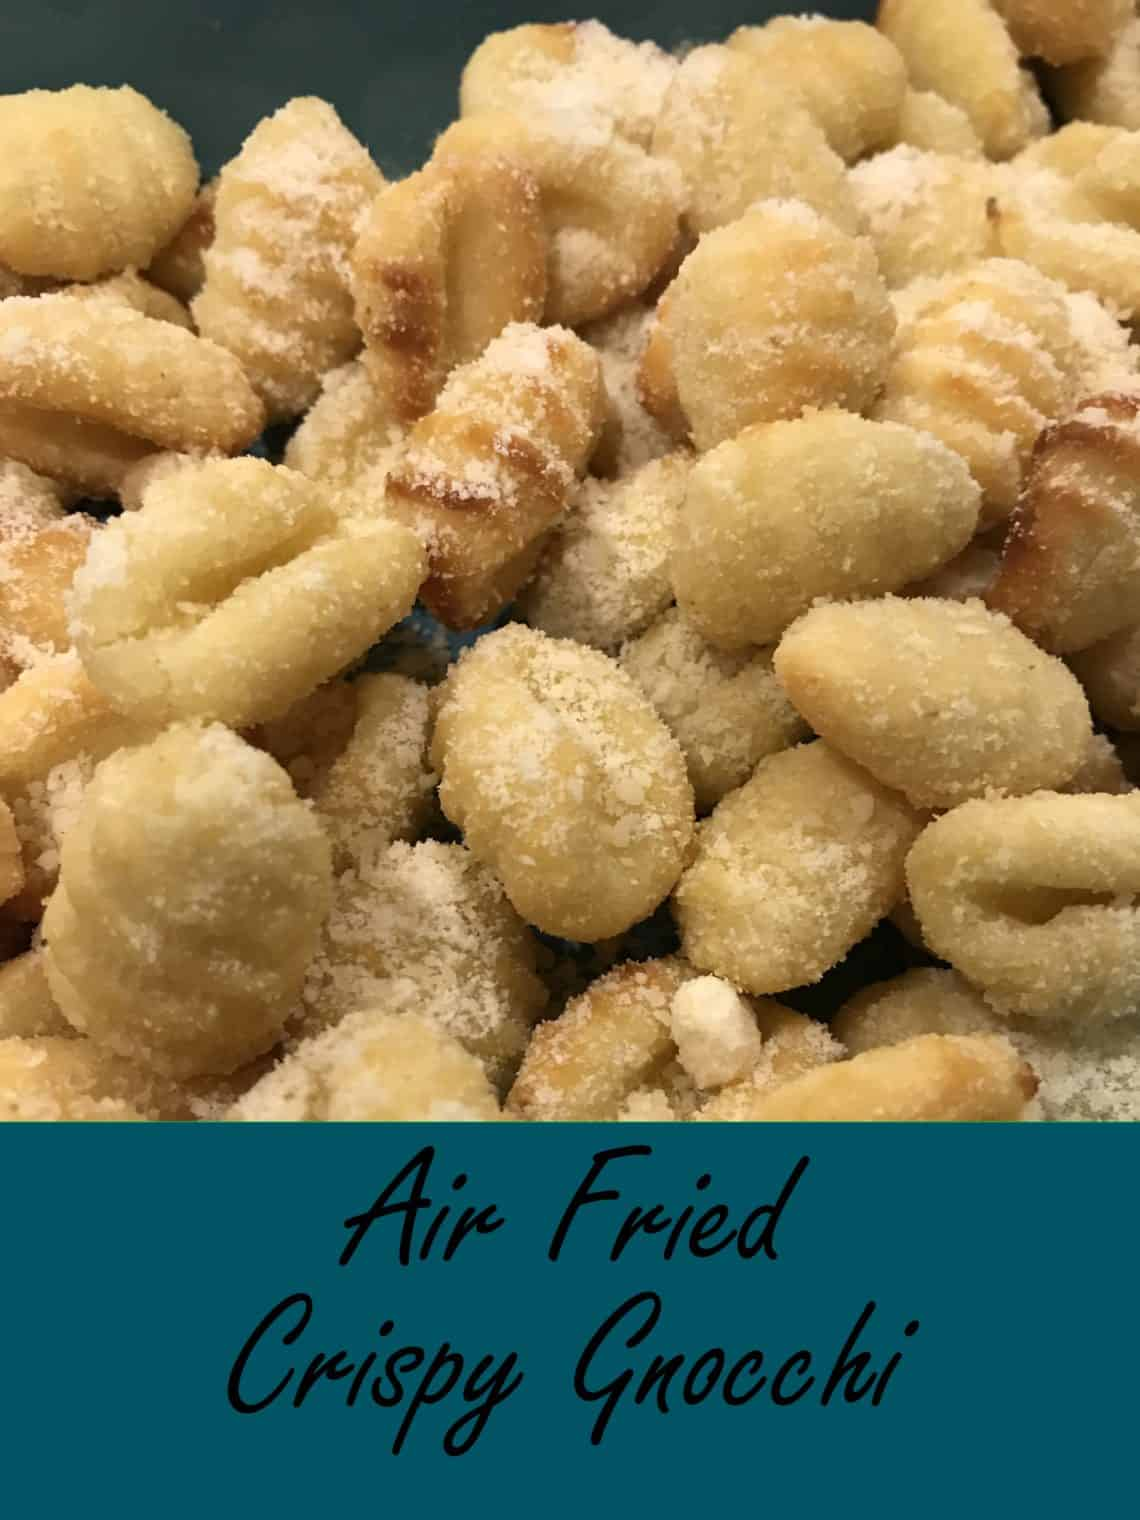 Gnocchi is fried without the oil to create a delicious crisp texture. Serve along with marinara to make a mouth watering modern Italian dish. #food #delicious #yummy